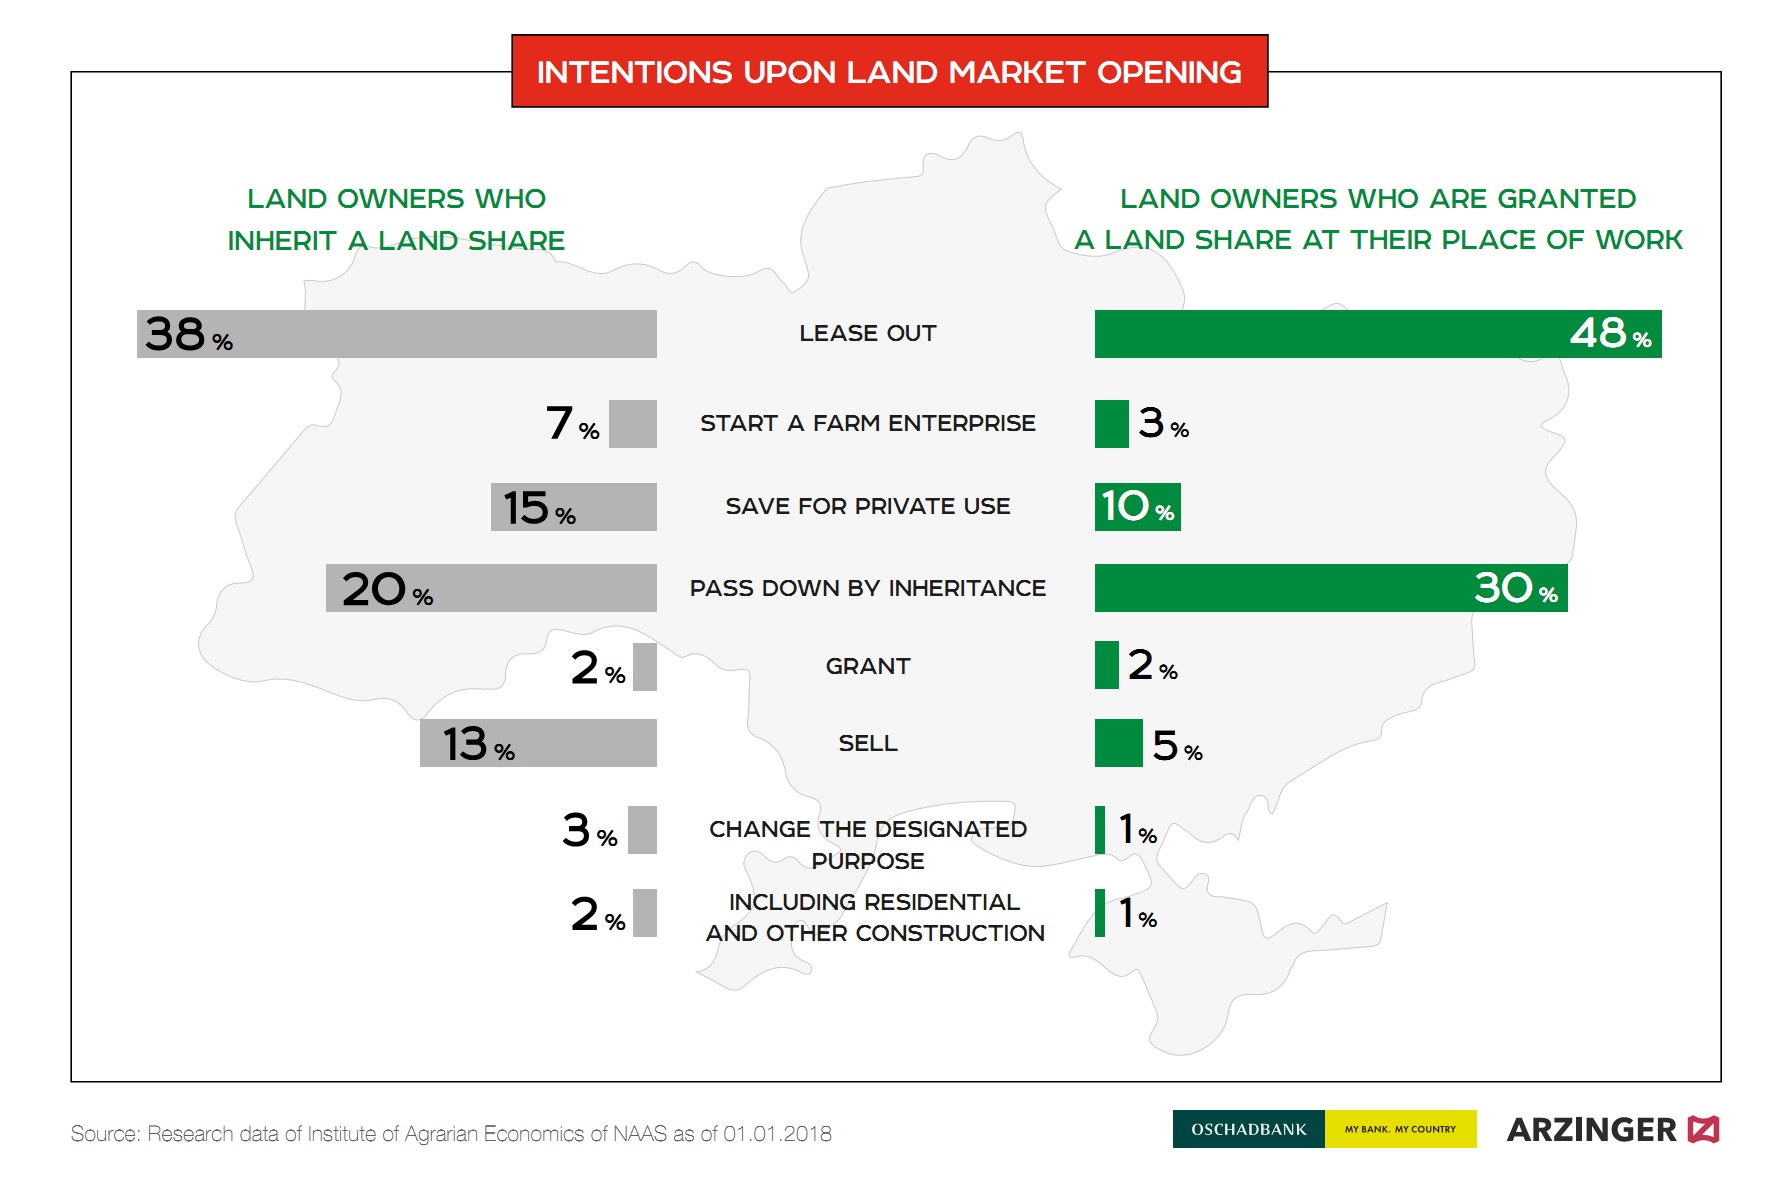 Intentions upon land market opening in Ukraine (click for full resolution)